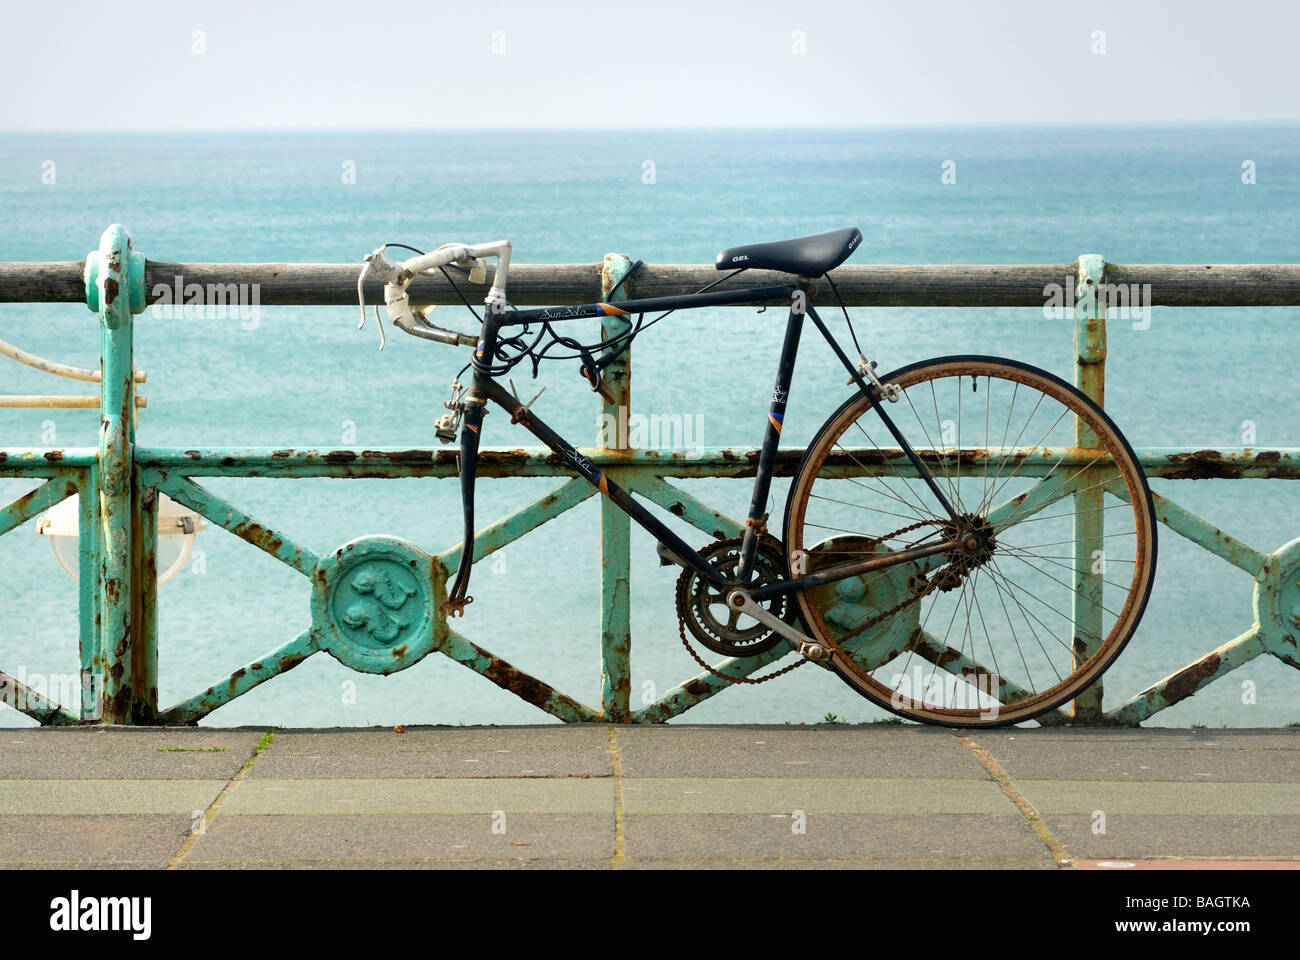 Old bicycle chained to railings on Brighton Seafront - Stock Image